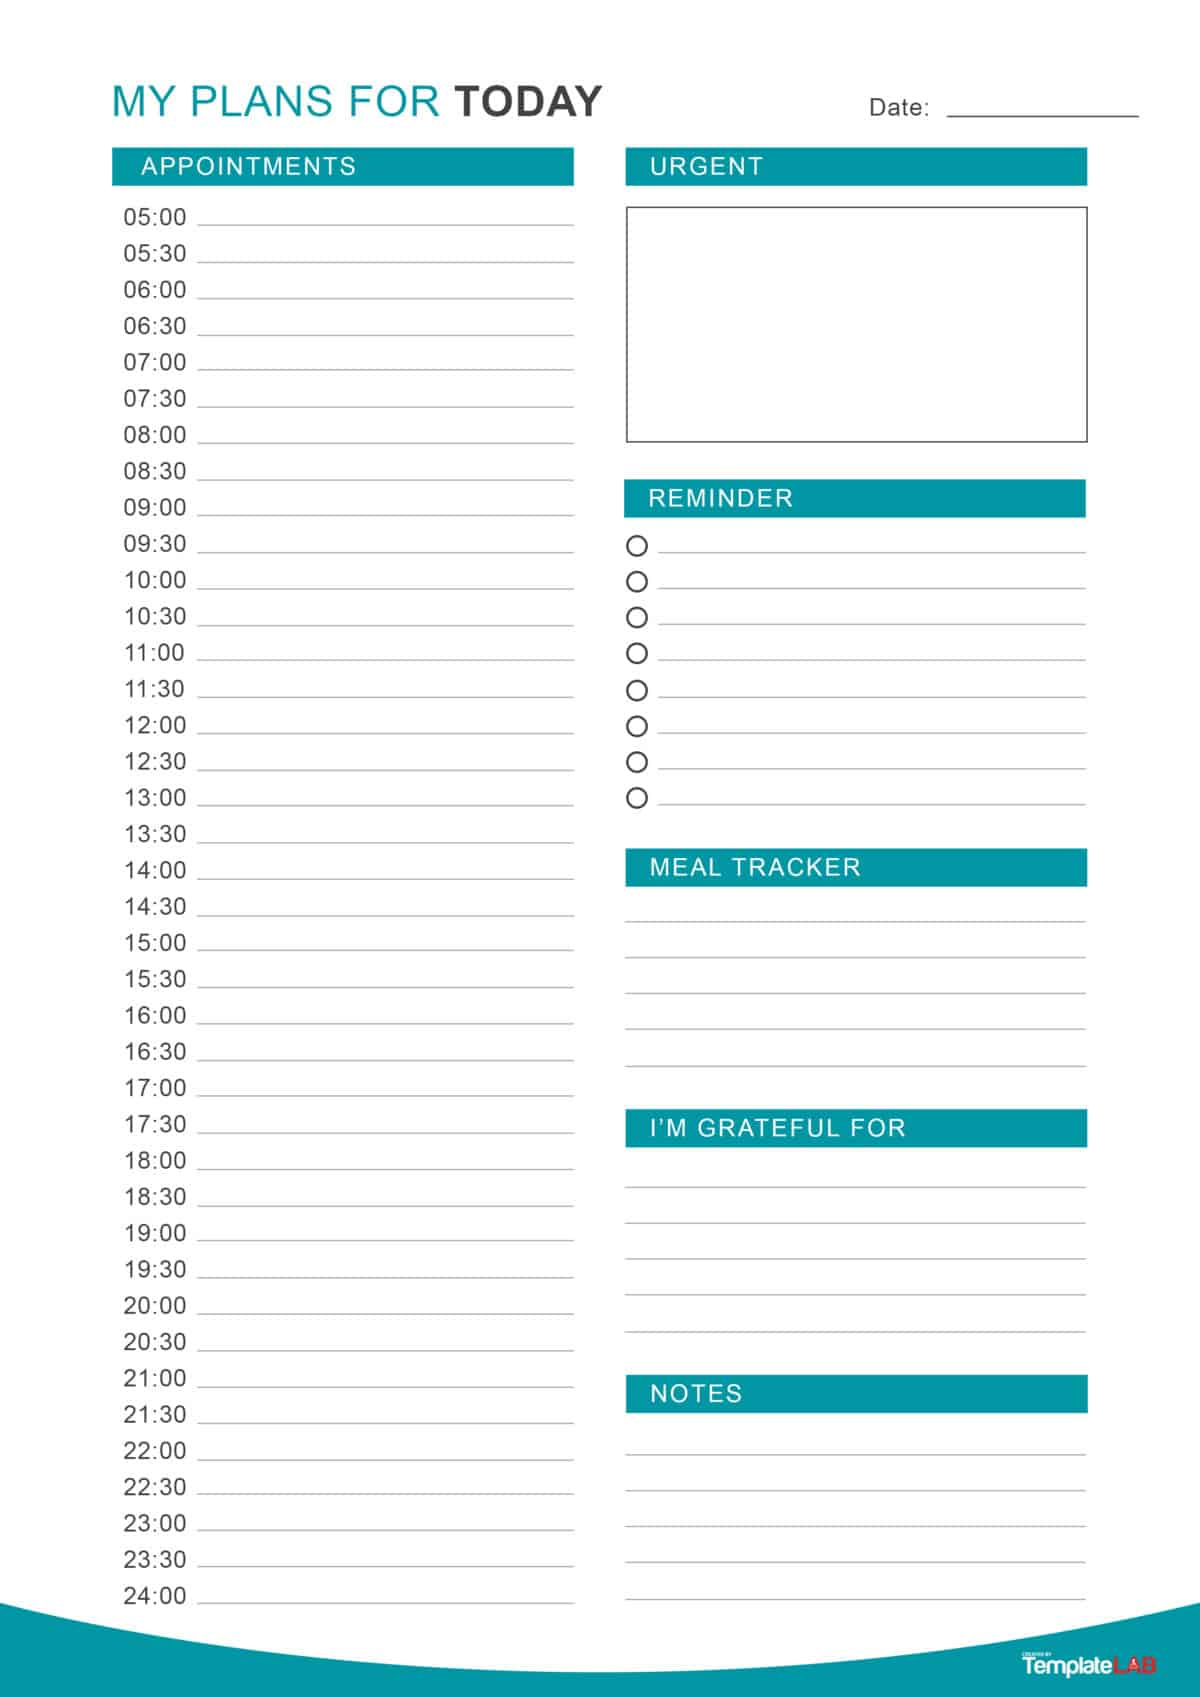 47 Printable Daily Planner Templates (Free In Wordexcelpdf) intended for Free Printable Daily Planner Template